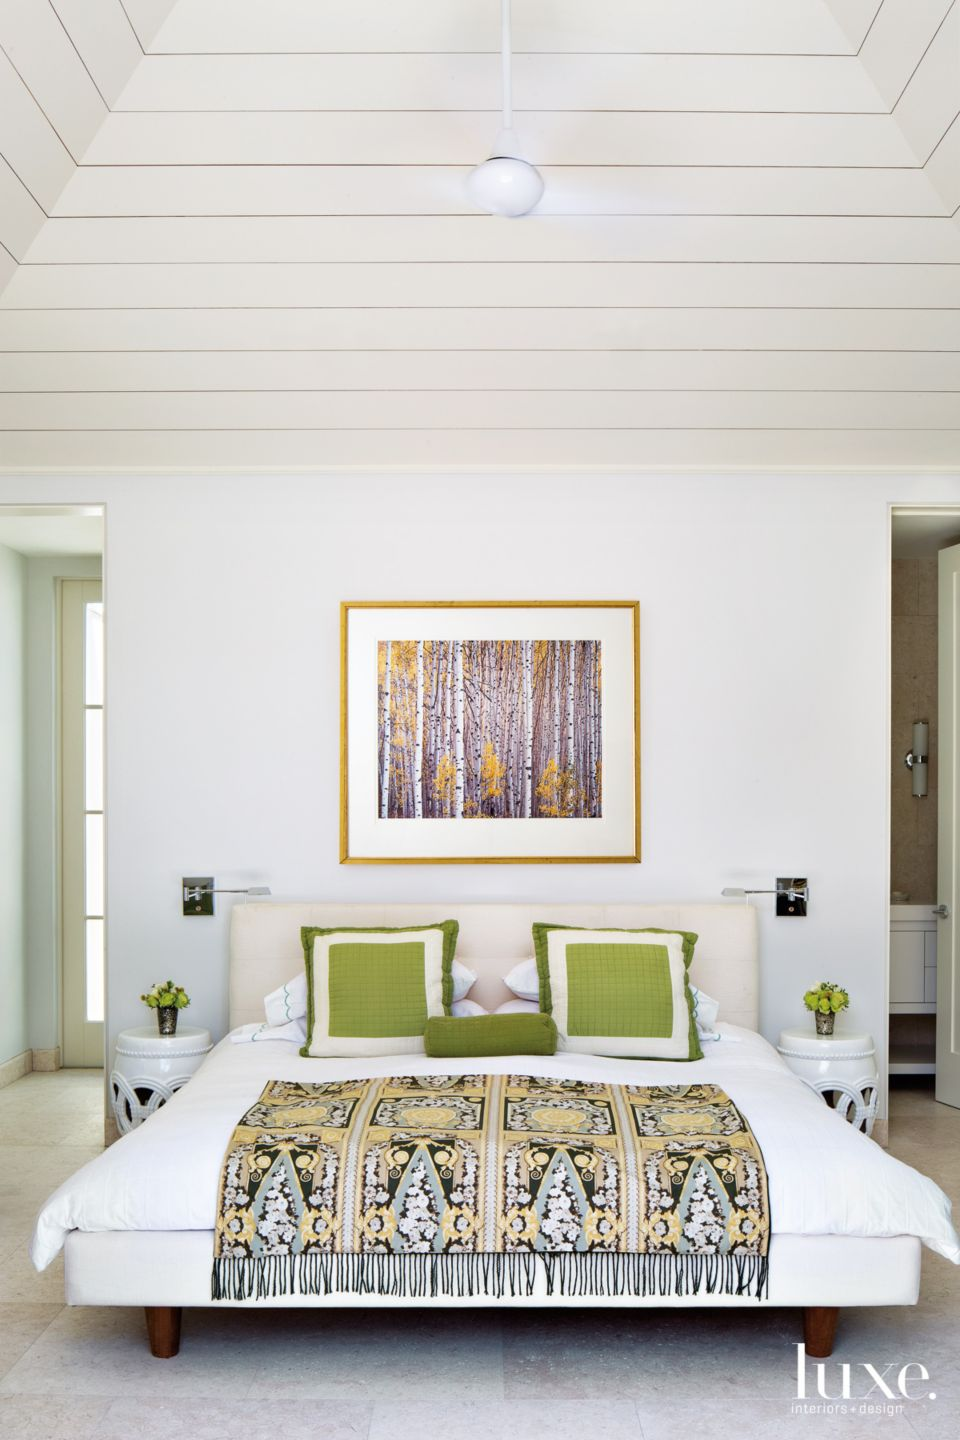 Modern White Guest Bedroom with Green Accents